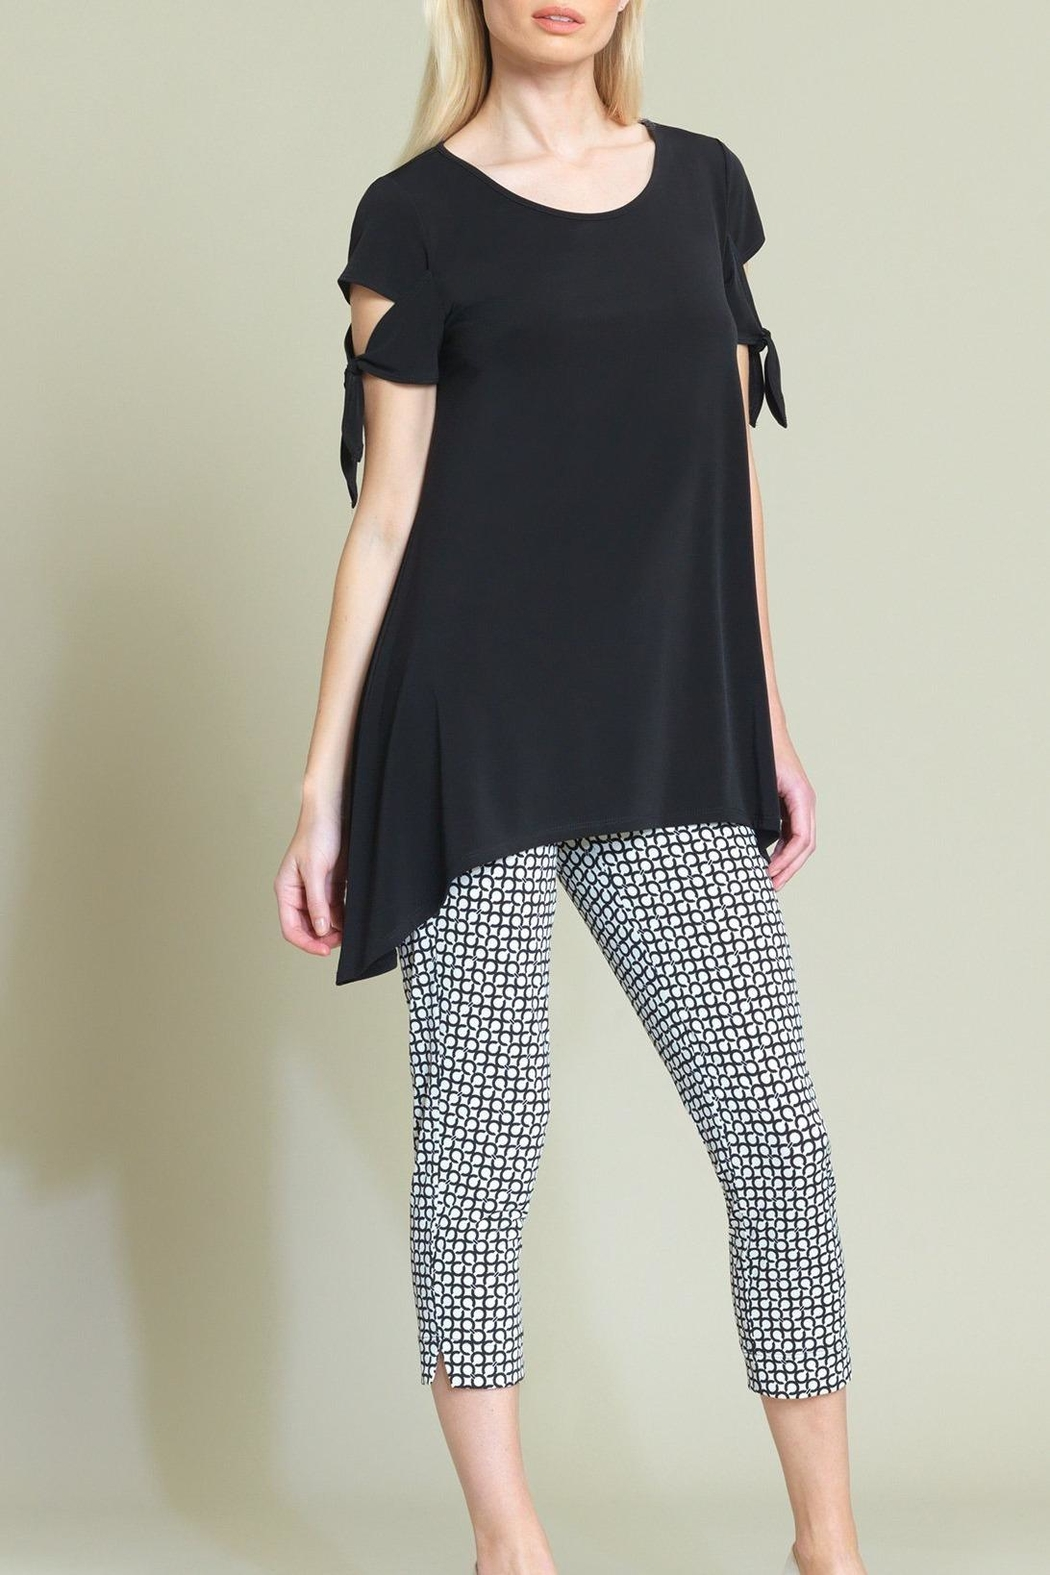 Clara Sunwoo Side Tie Tunic - Main Image